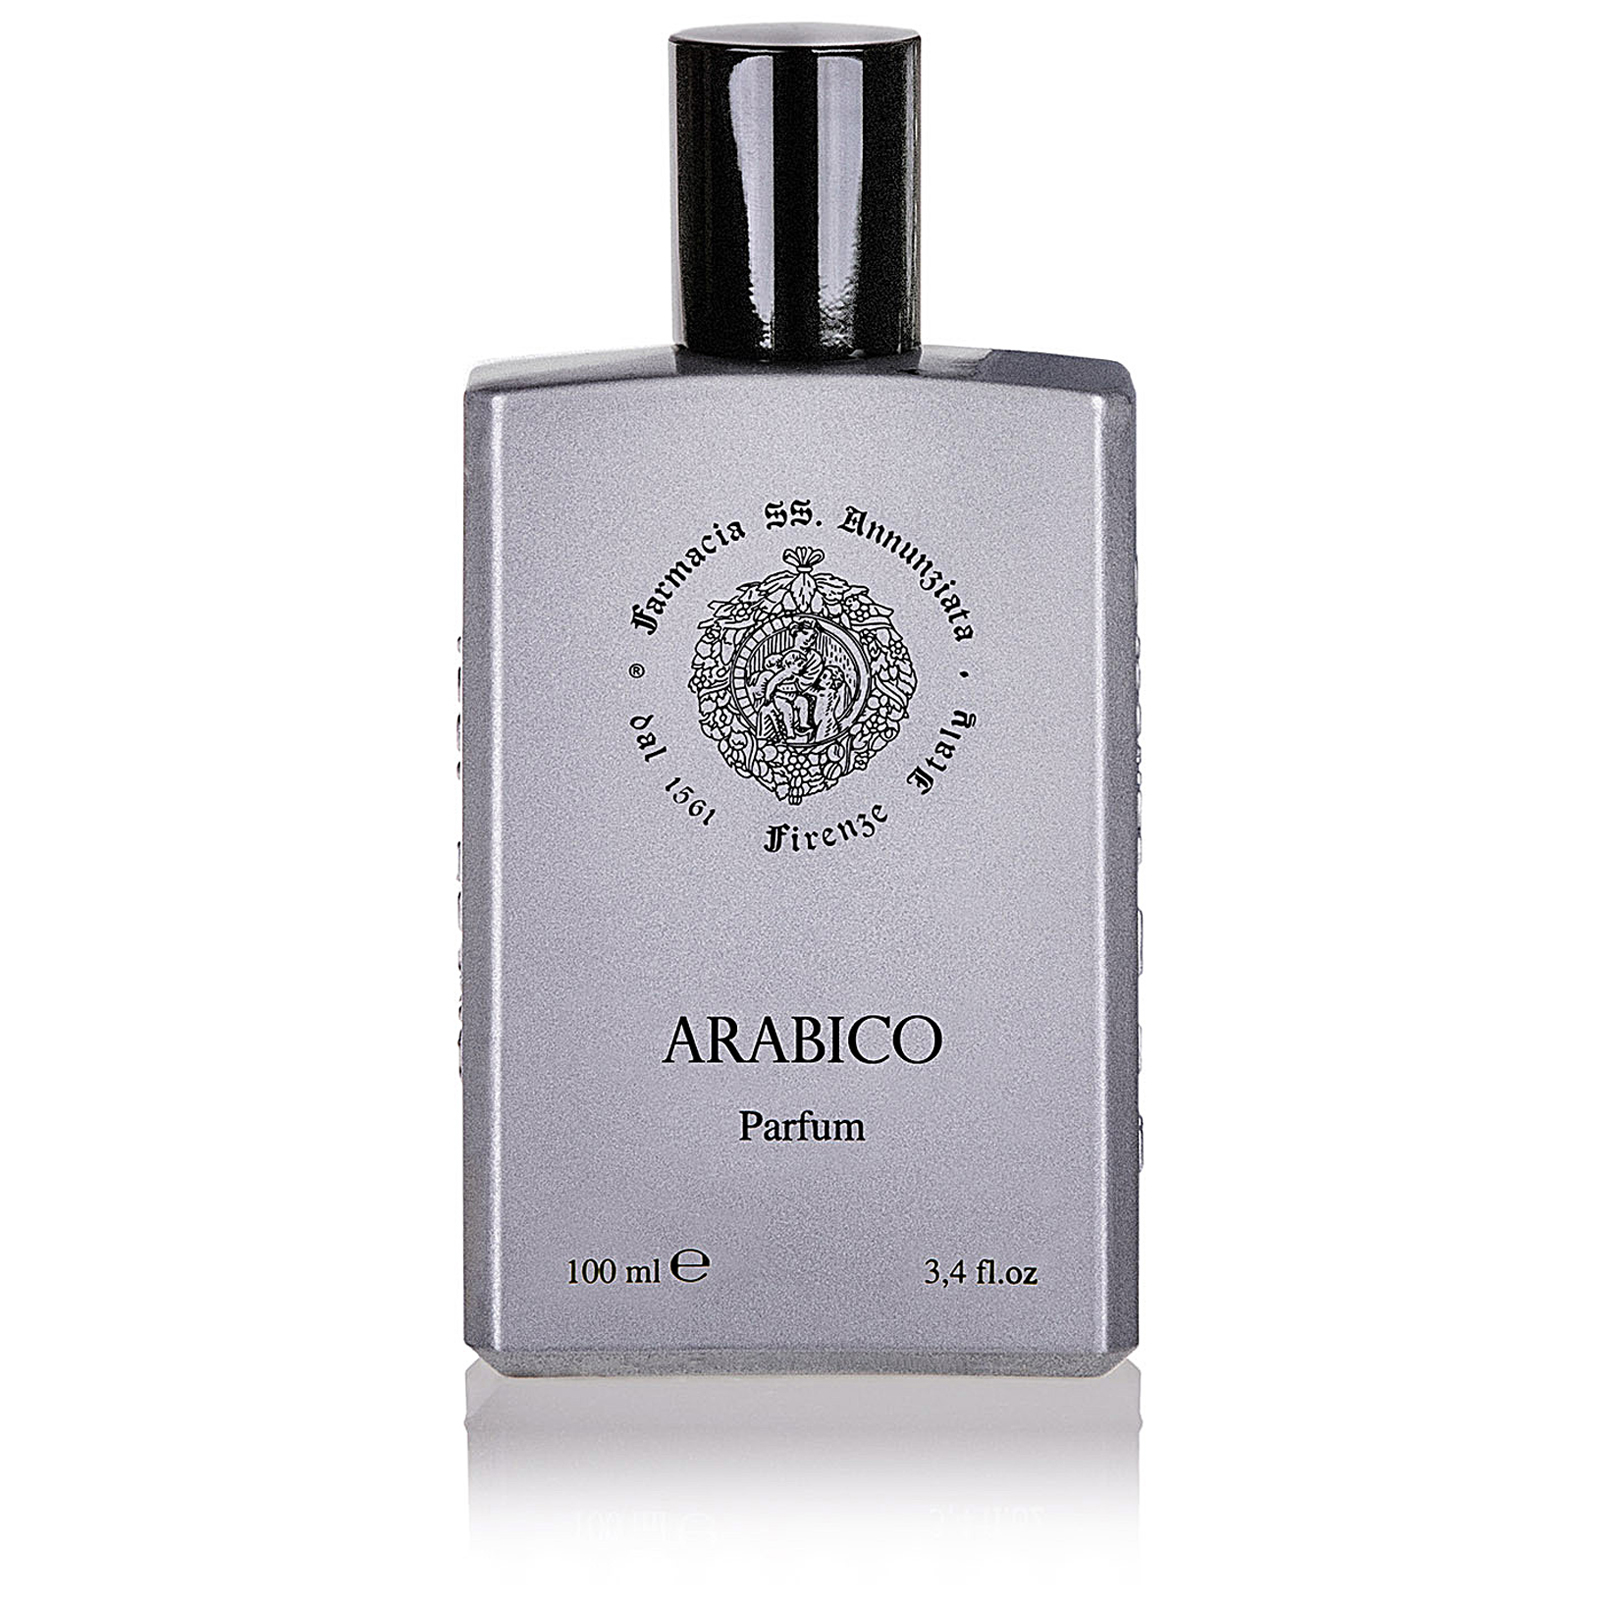 Arabico profumo parfum 100 ml